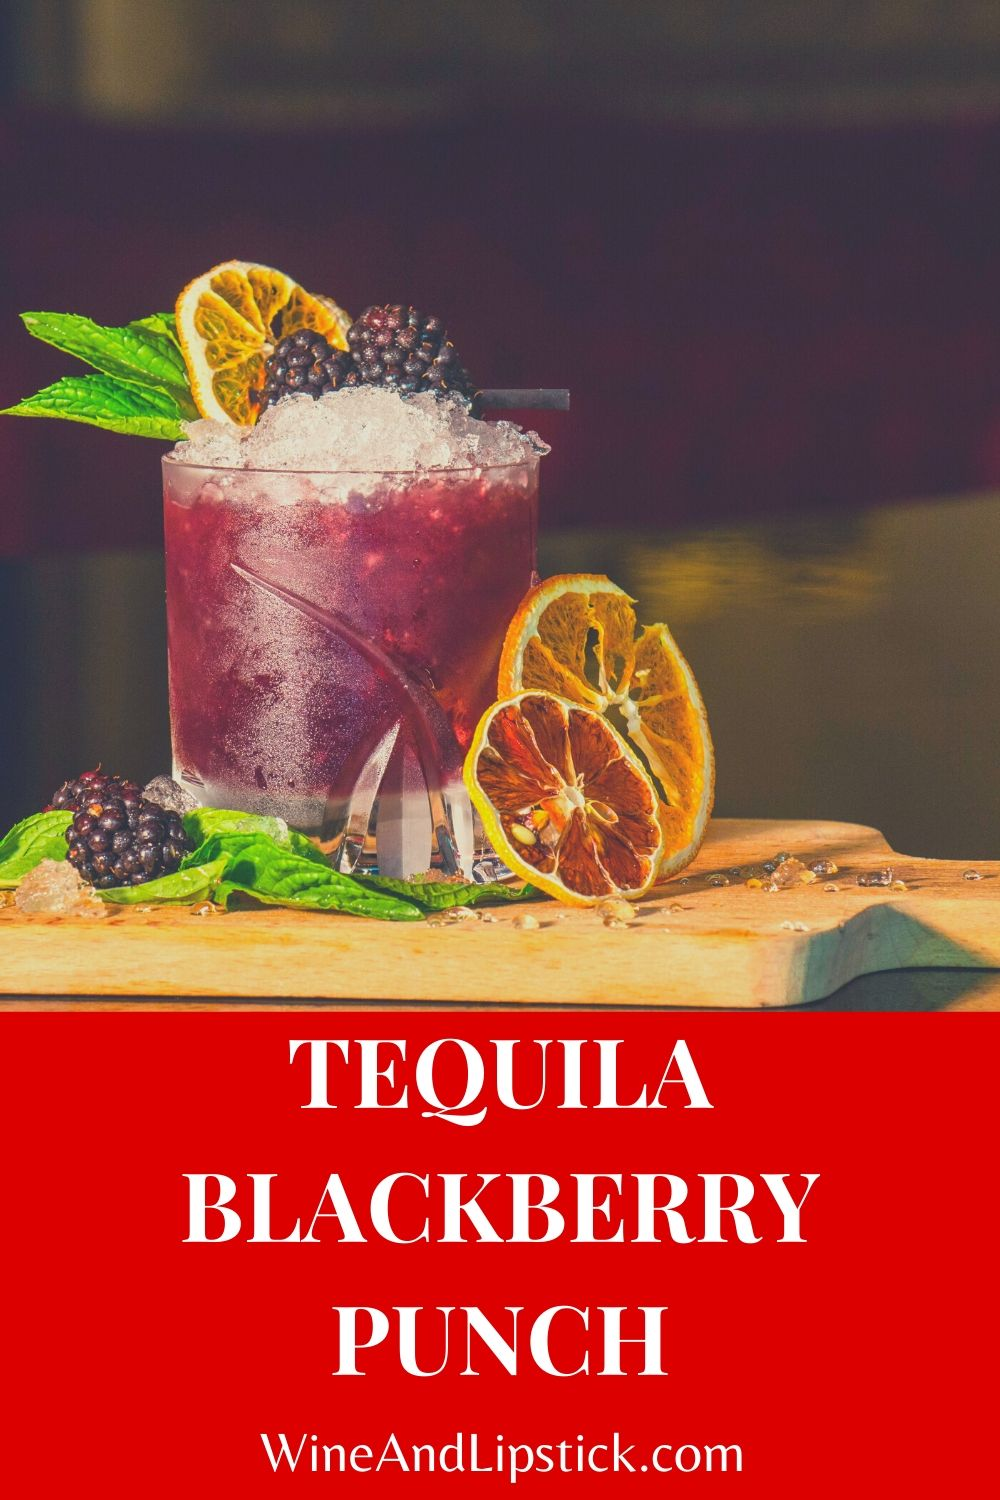 Tequila Blackberry Punch {Simple Tequila Drink}